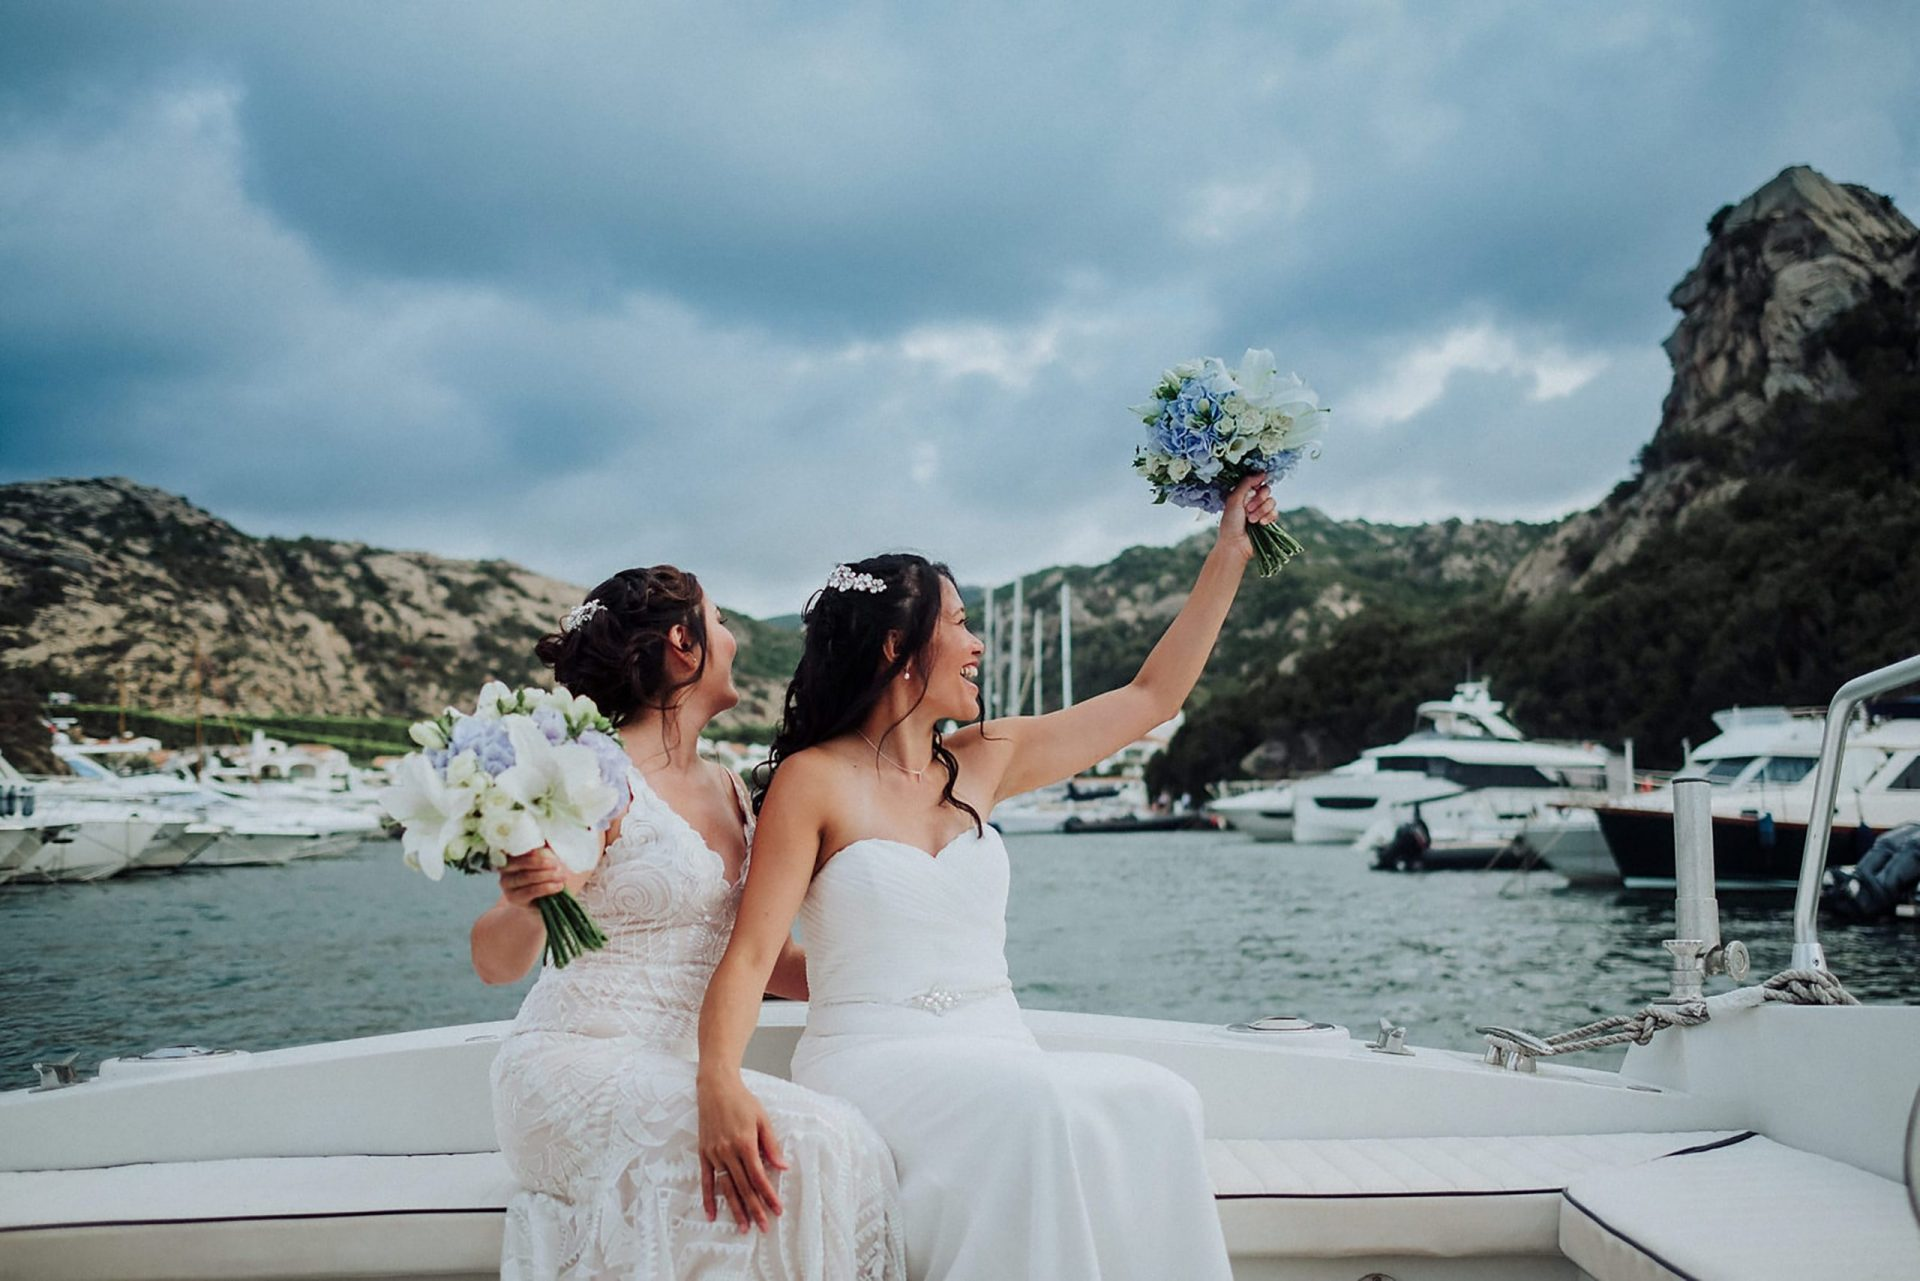 Cheryl and Leslye, the brides on the boat